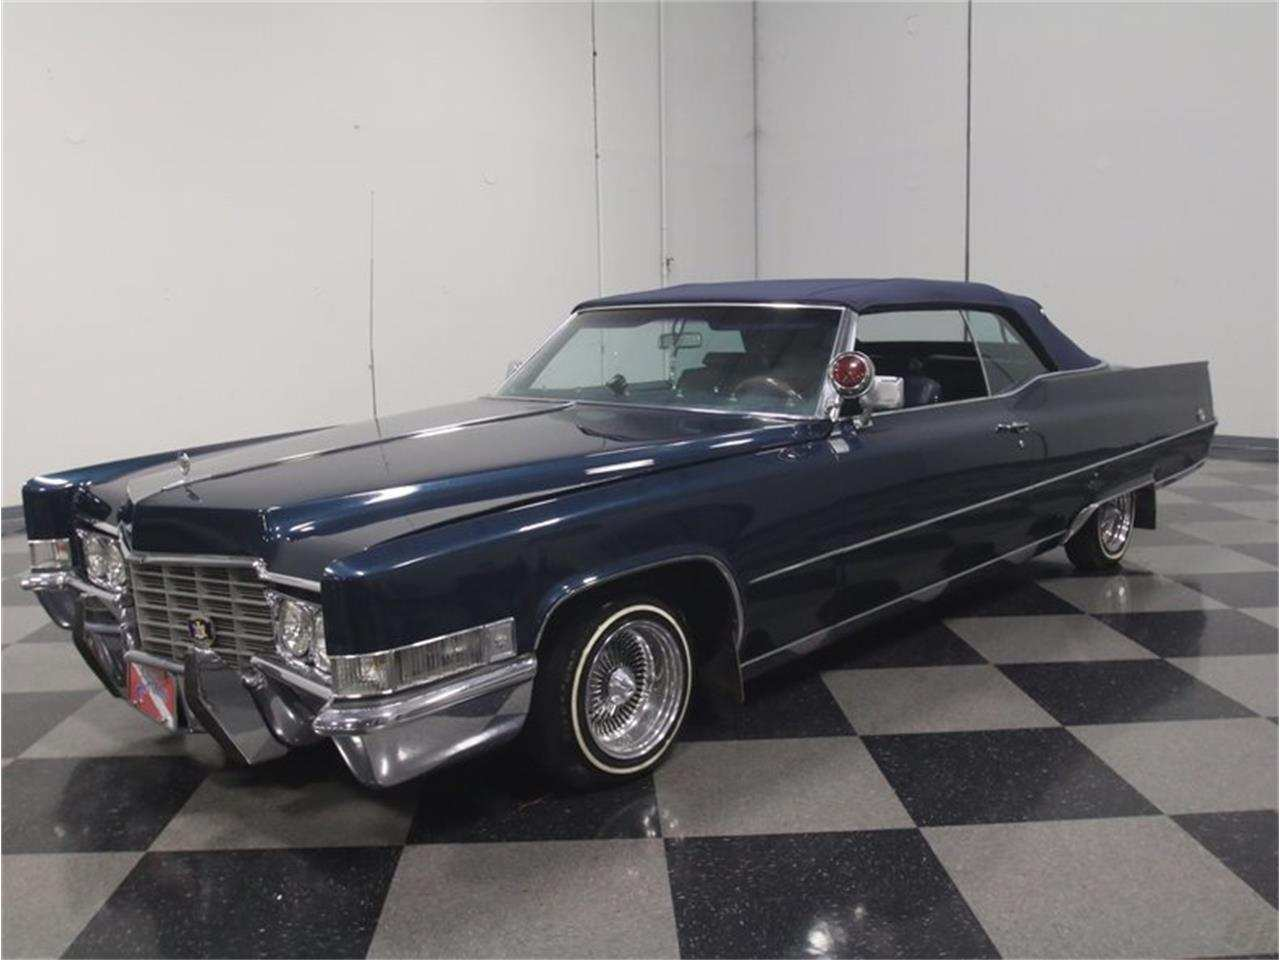 11 Great 69 Coupe Deville Performance for 69 Coupe Deville